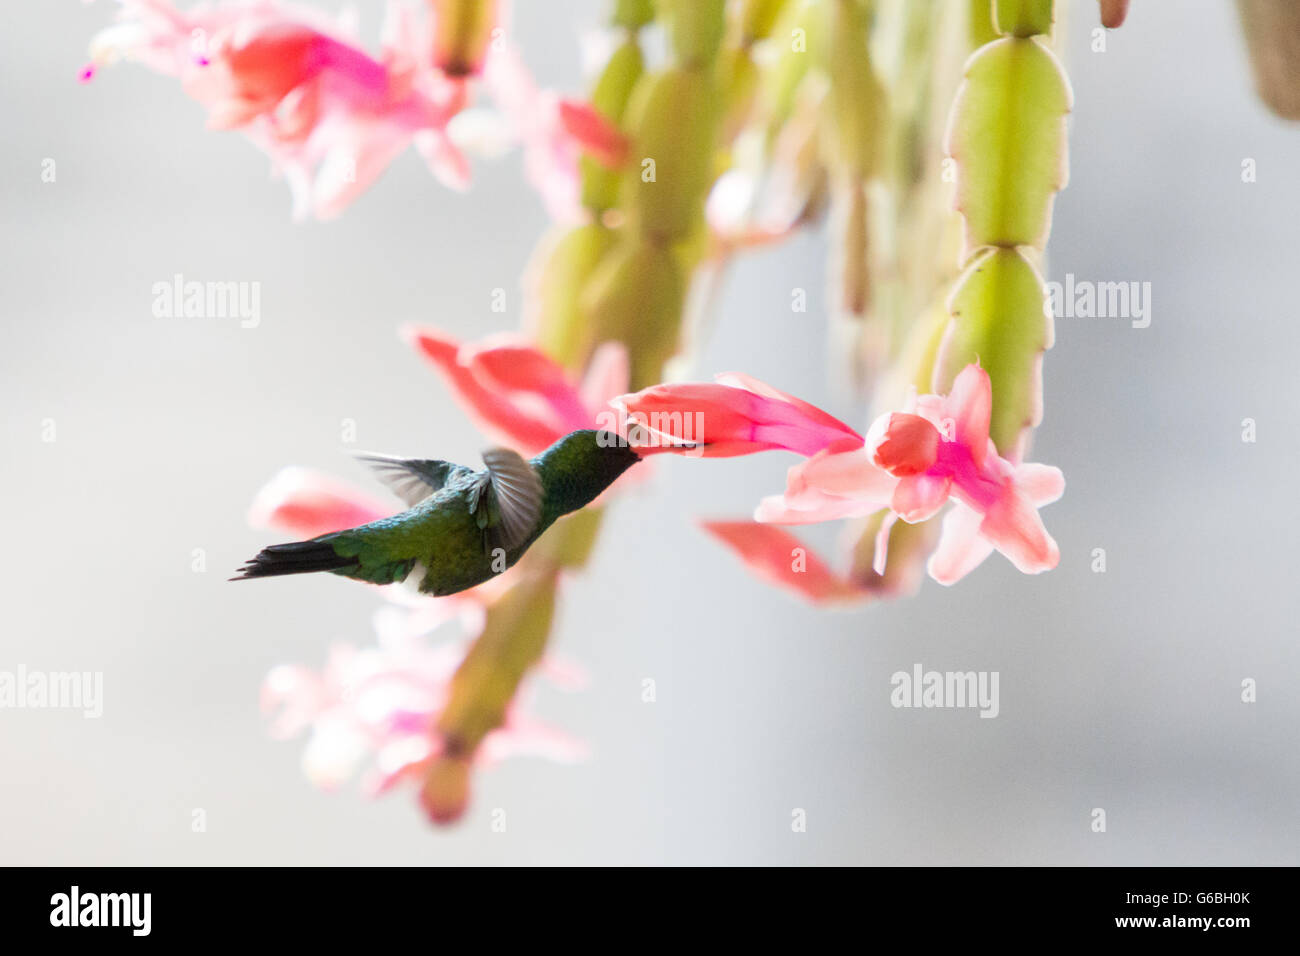 Asuncion, Paraguay. 24th June, 2016. A Glittering-bellied emerald (Chlorostilbon lucidus) hummingbird hovering in flight while feeds nectar from pink Christmas cactus (Schlumbergera truncata) flower, is seen during sunny day in Asuncion, Paraguay. Credit:  Andre M. Chang/ARDUOPRESS/Alamy Live News Stock Photo